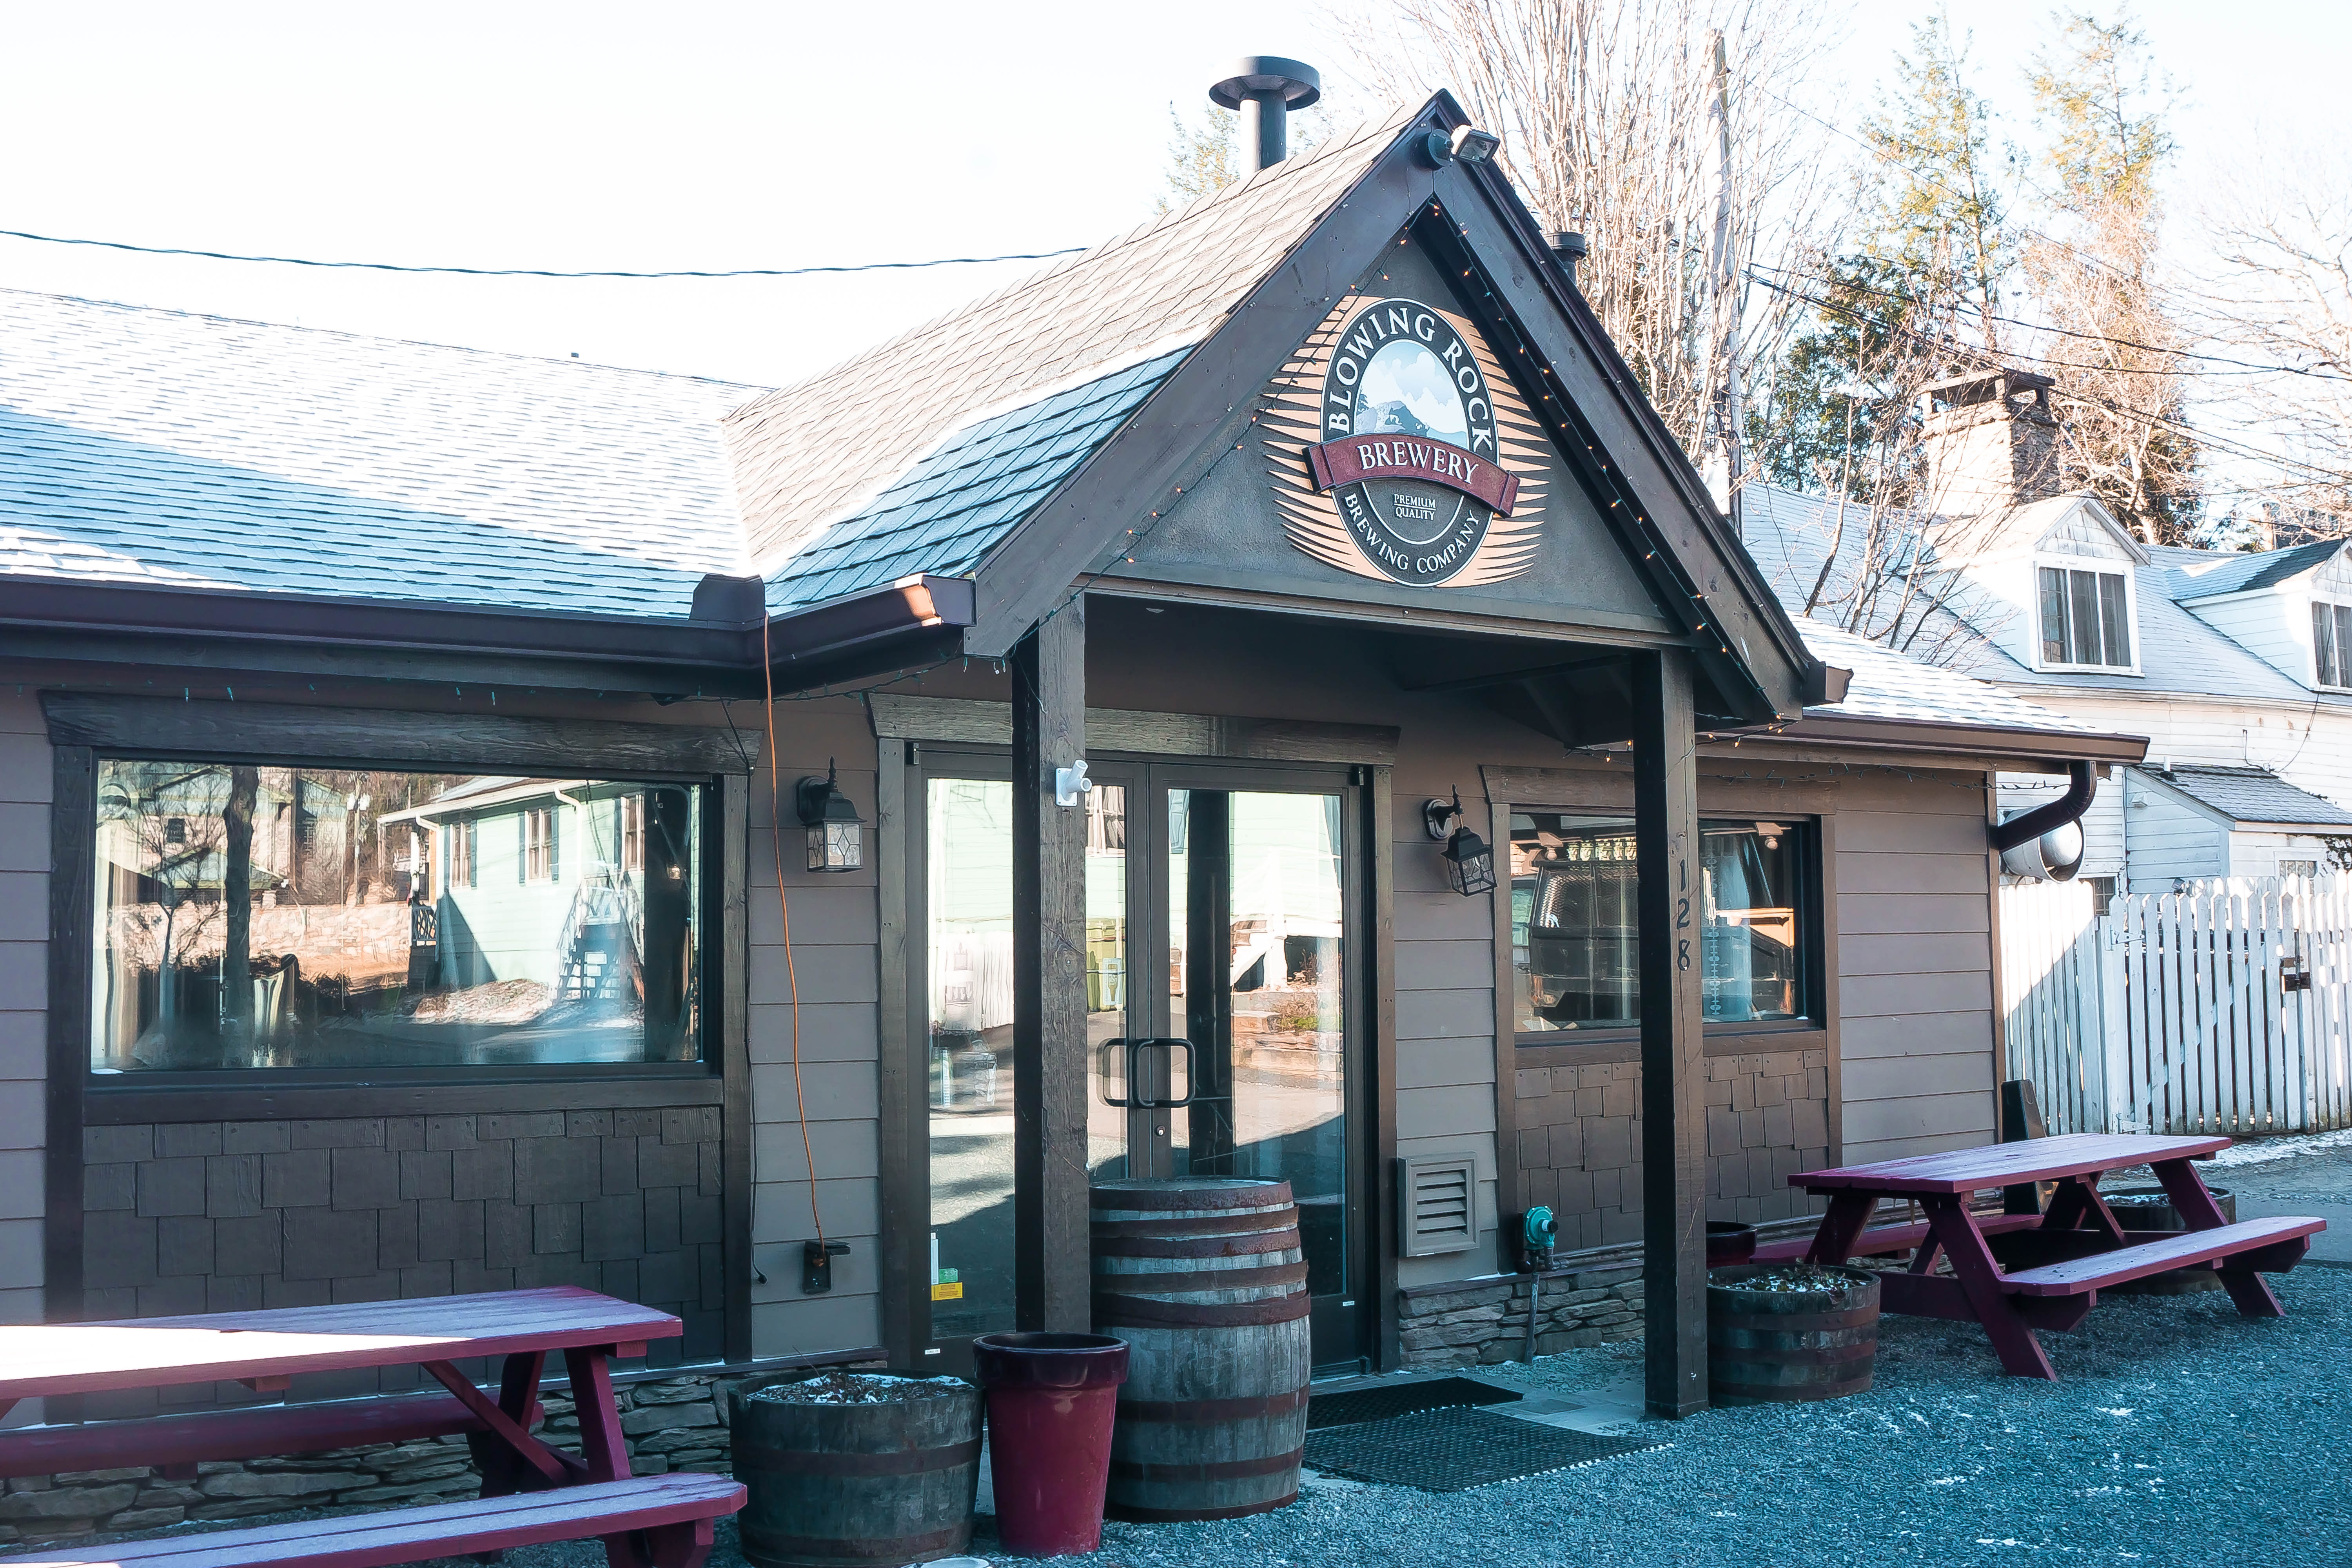 Blowing Rock Brewery: Staying at the Inn